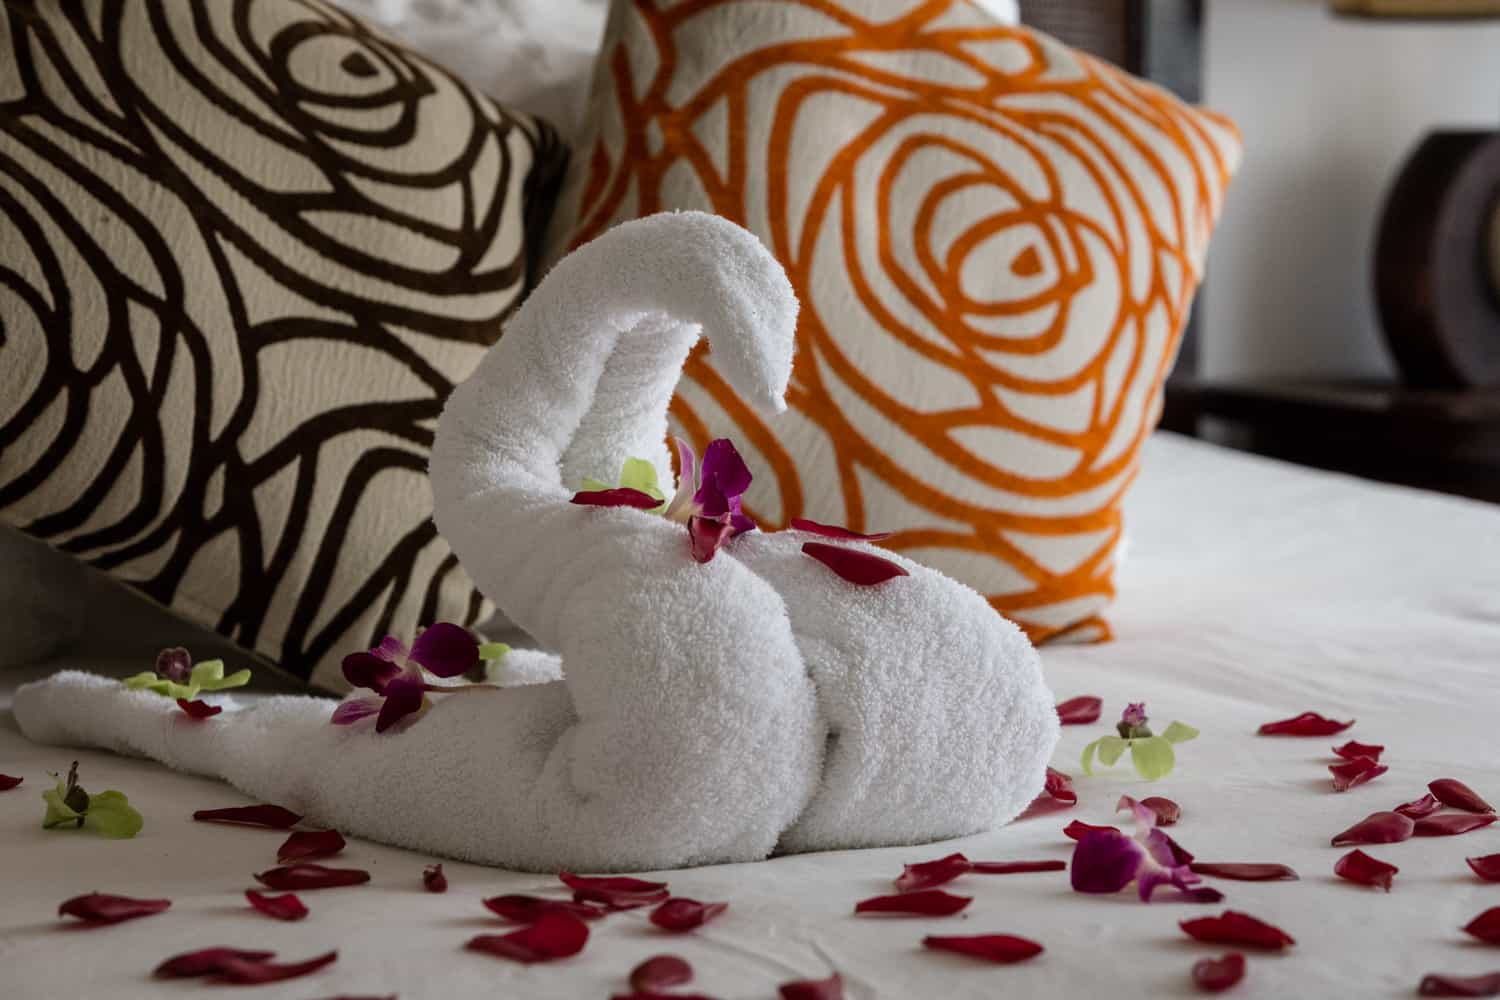 Bed decorated with rose petals for just married couple at Bahia del Sol Hotel.